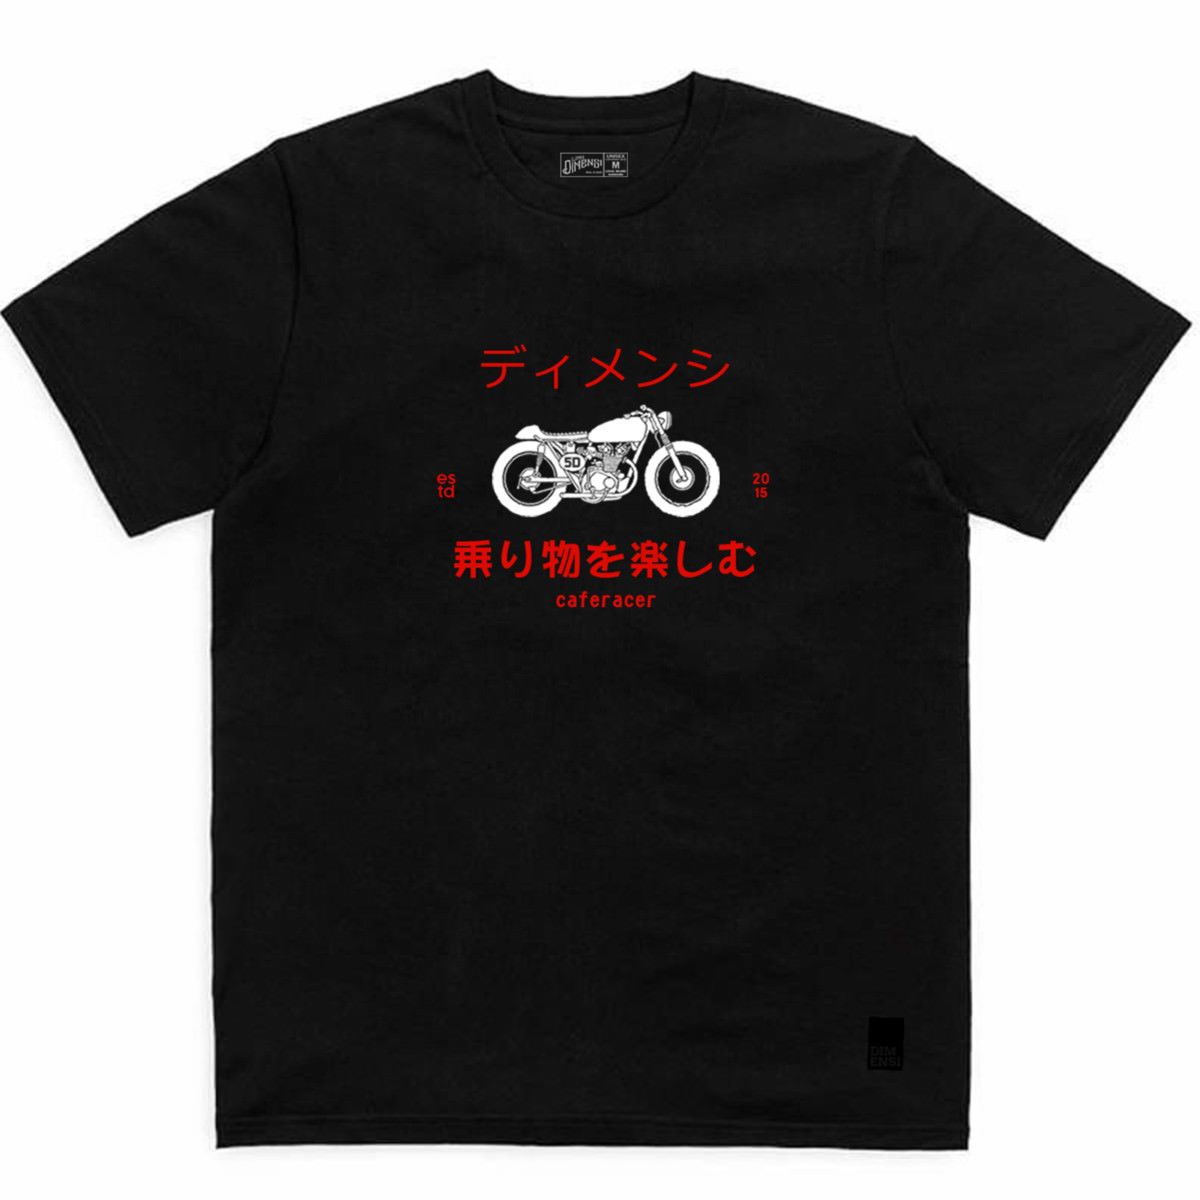 2018 New Mens T Shirts New Caferacer Black By Lima Dimensi Japanese Fonts Cafe Racer Print Round Neck ManTops in T Shirts from Men 39 s Clothing